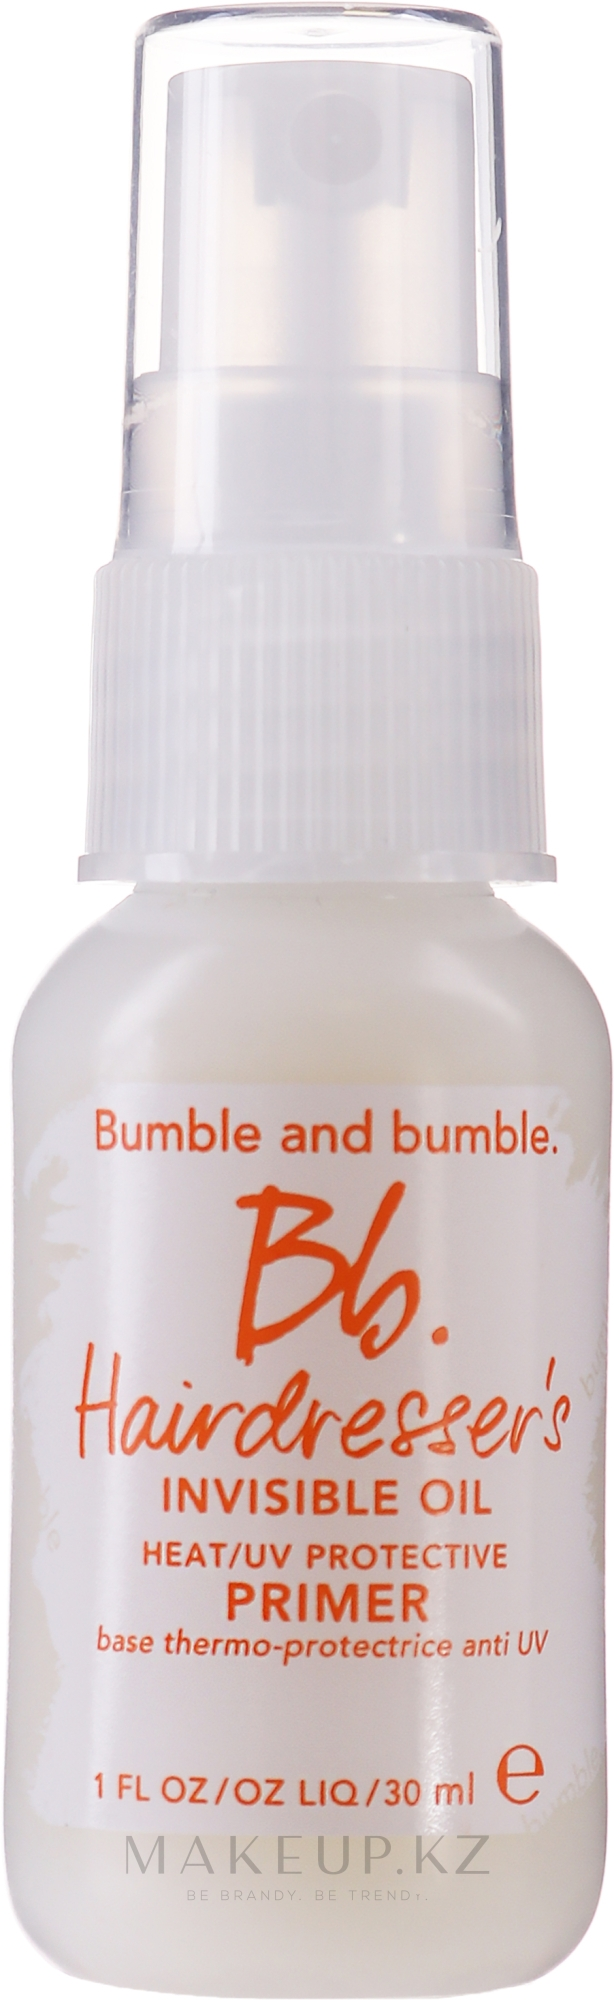 Масло для волос - Bumble and Bumble Hairdresser's Invisible Oil Primer Travel Size — фото 30 ml